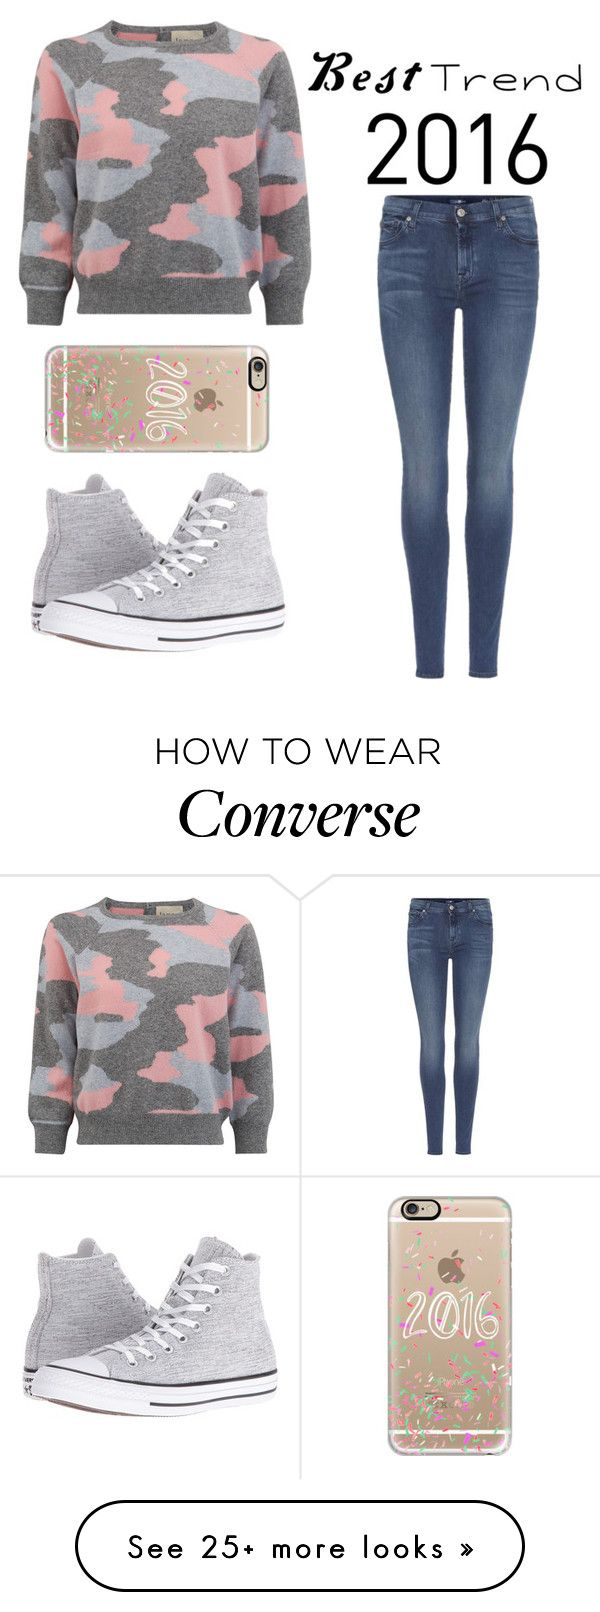 """Best trend 2016"" by sara-beatrice-lazar on Polyvore featuring 7 For All Mankind, Converse and Casetify"